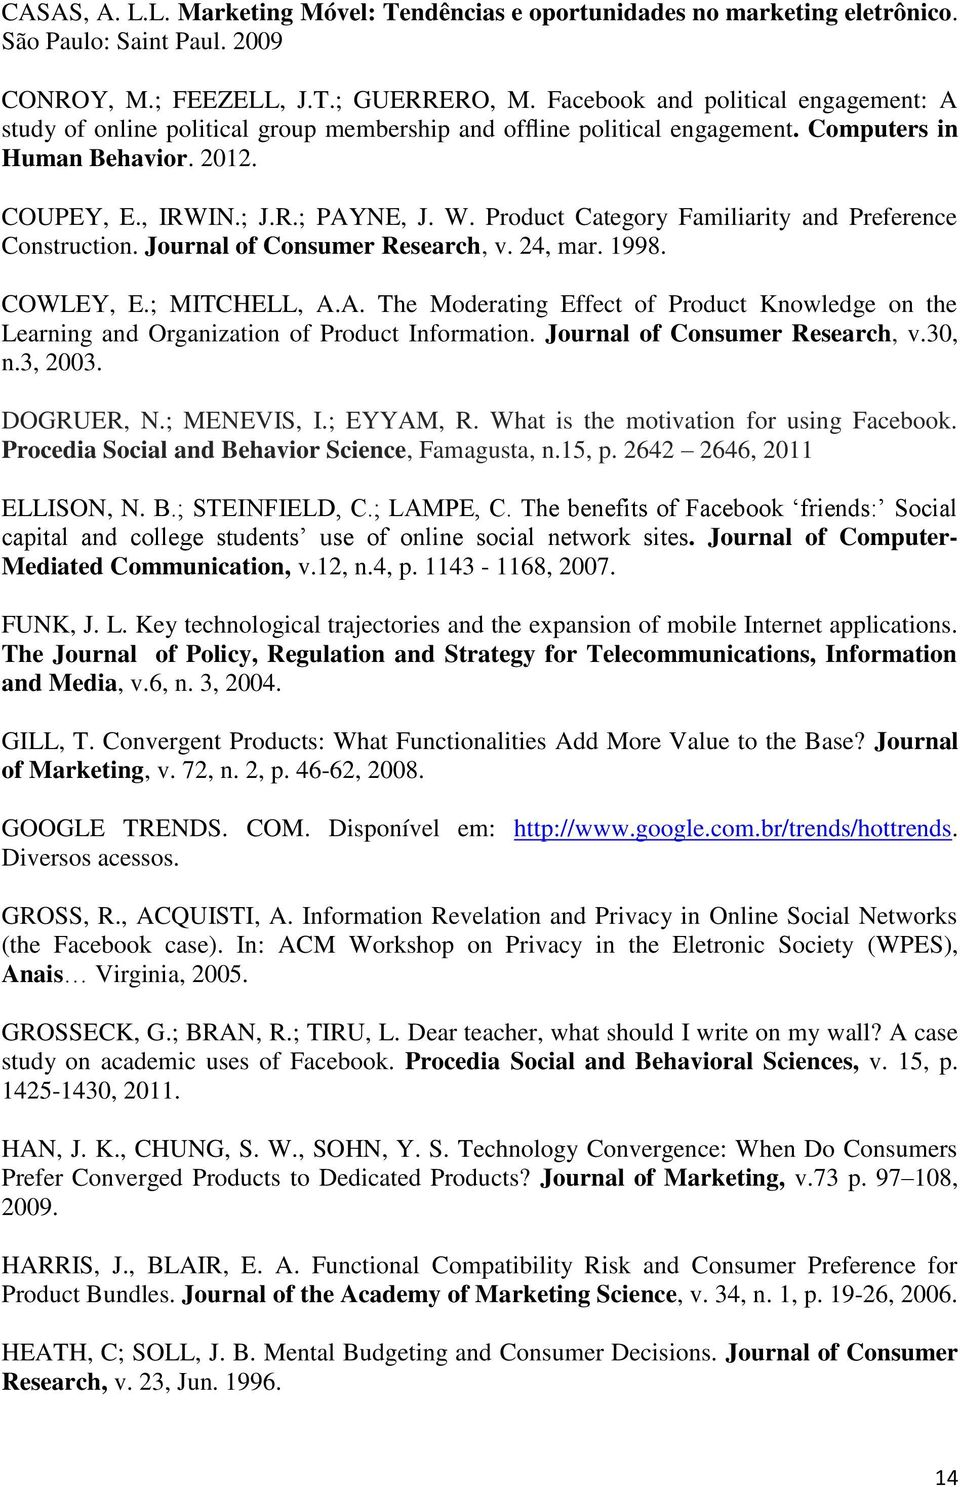 Product Category Familiarity and Preference Construction. Journal of Consumer Research, v. 24, mar. 1998. COWLEY, E.; MITCHELL, A.